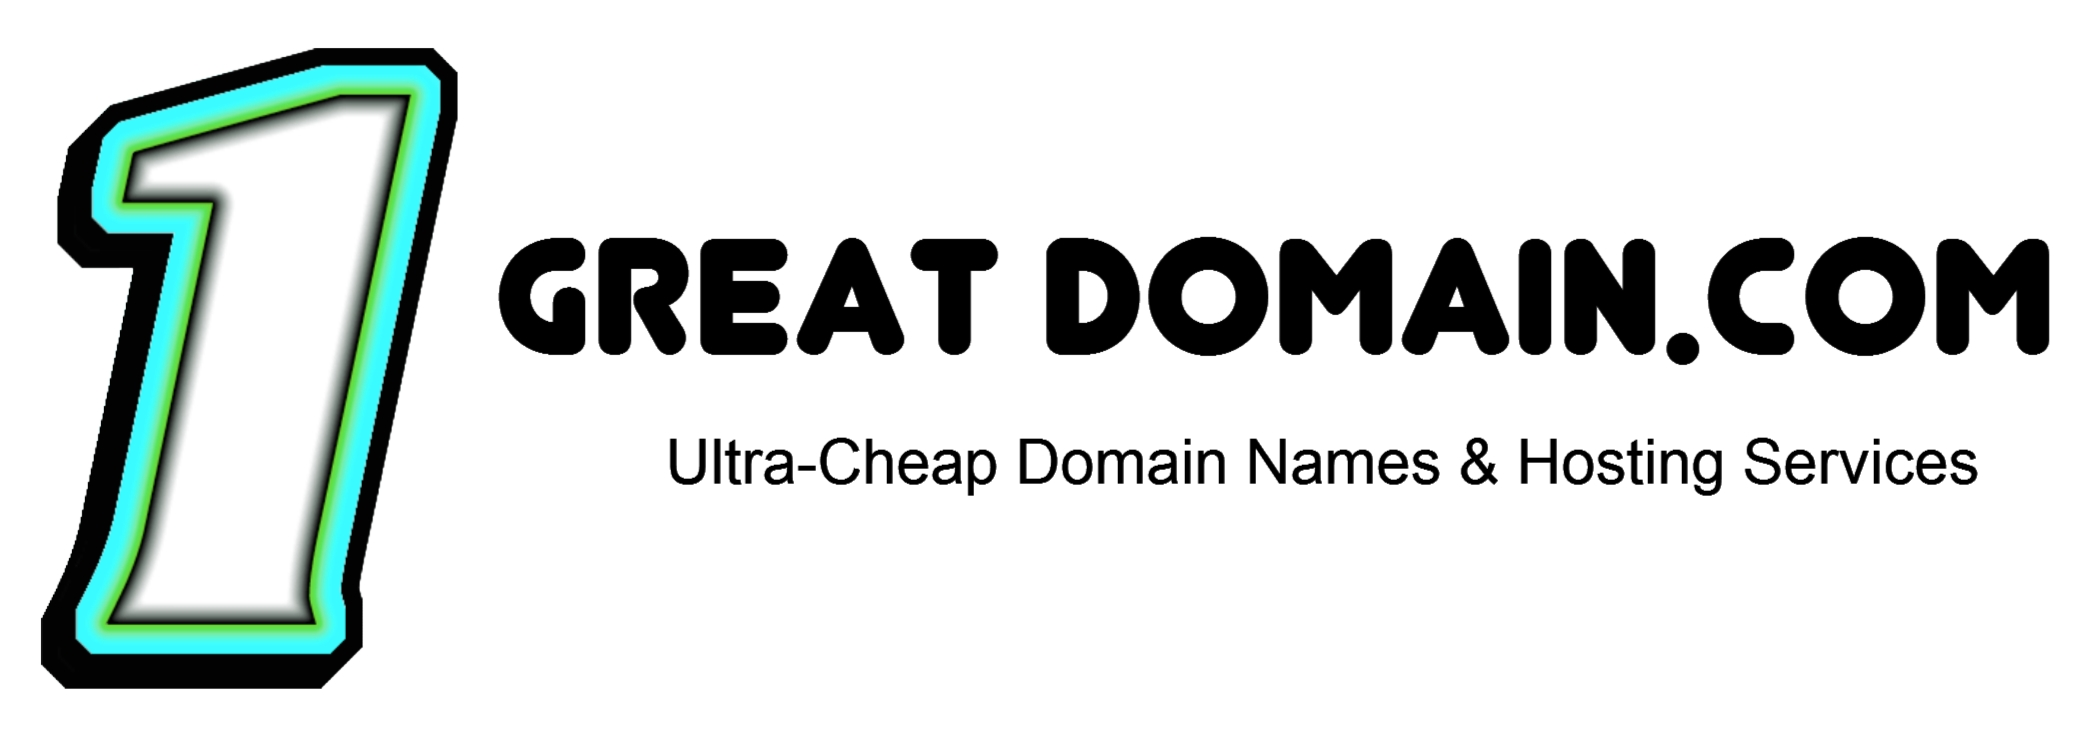 1greatdomain.com